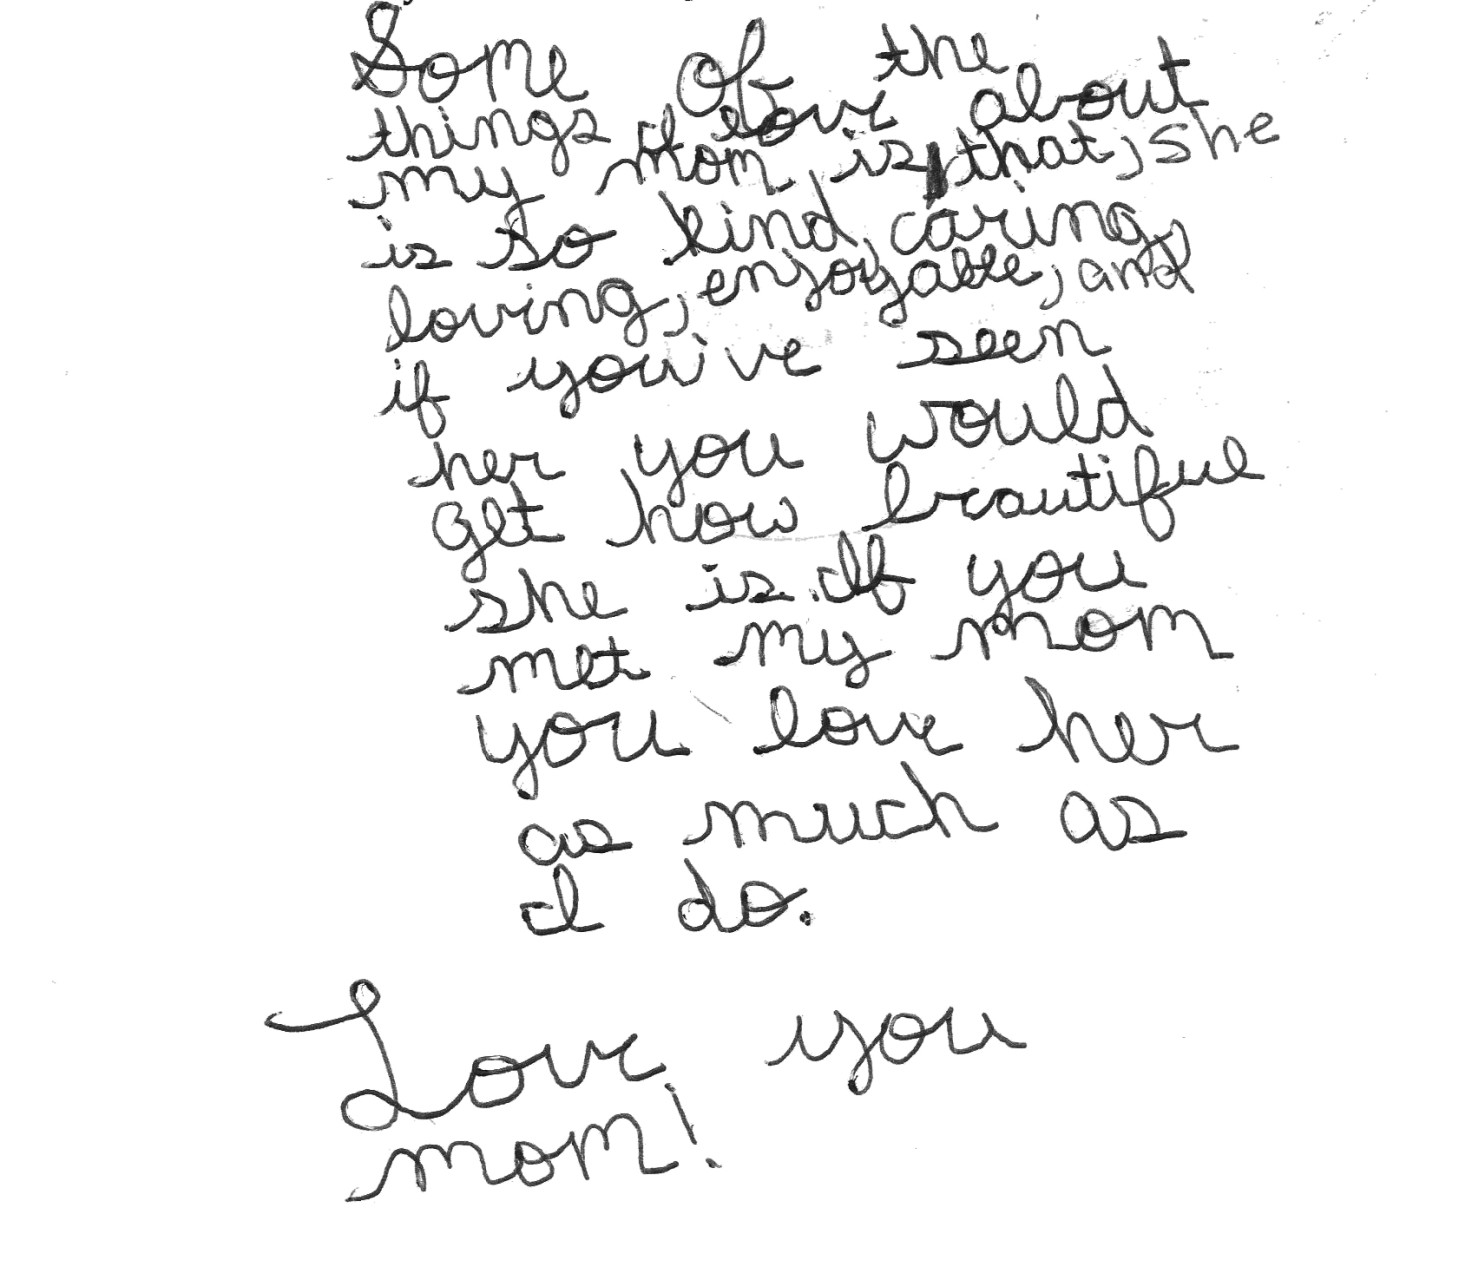 Letter to Mom from boy